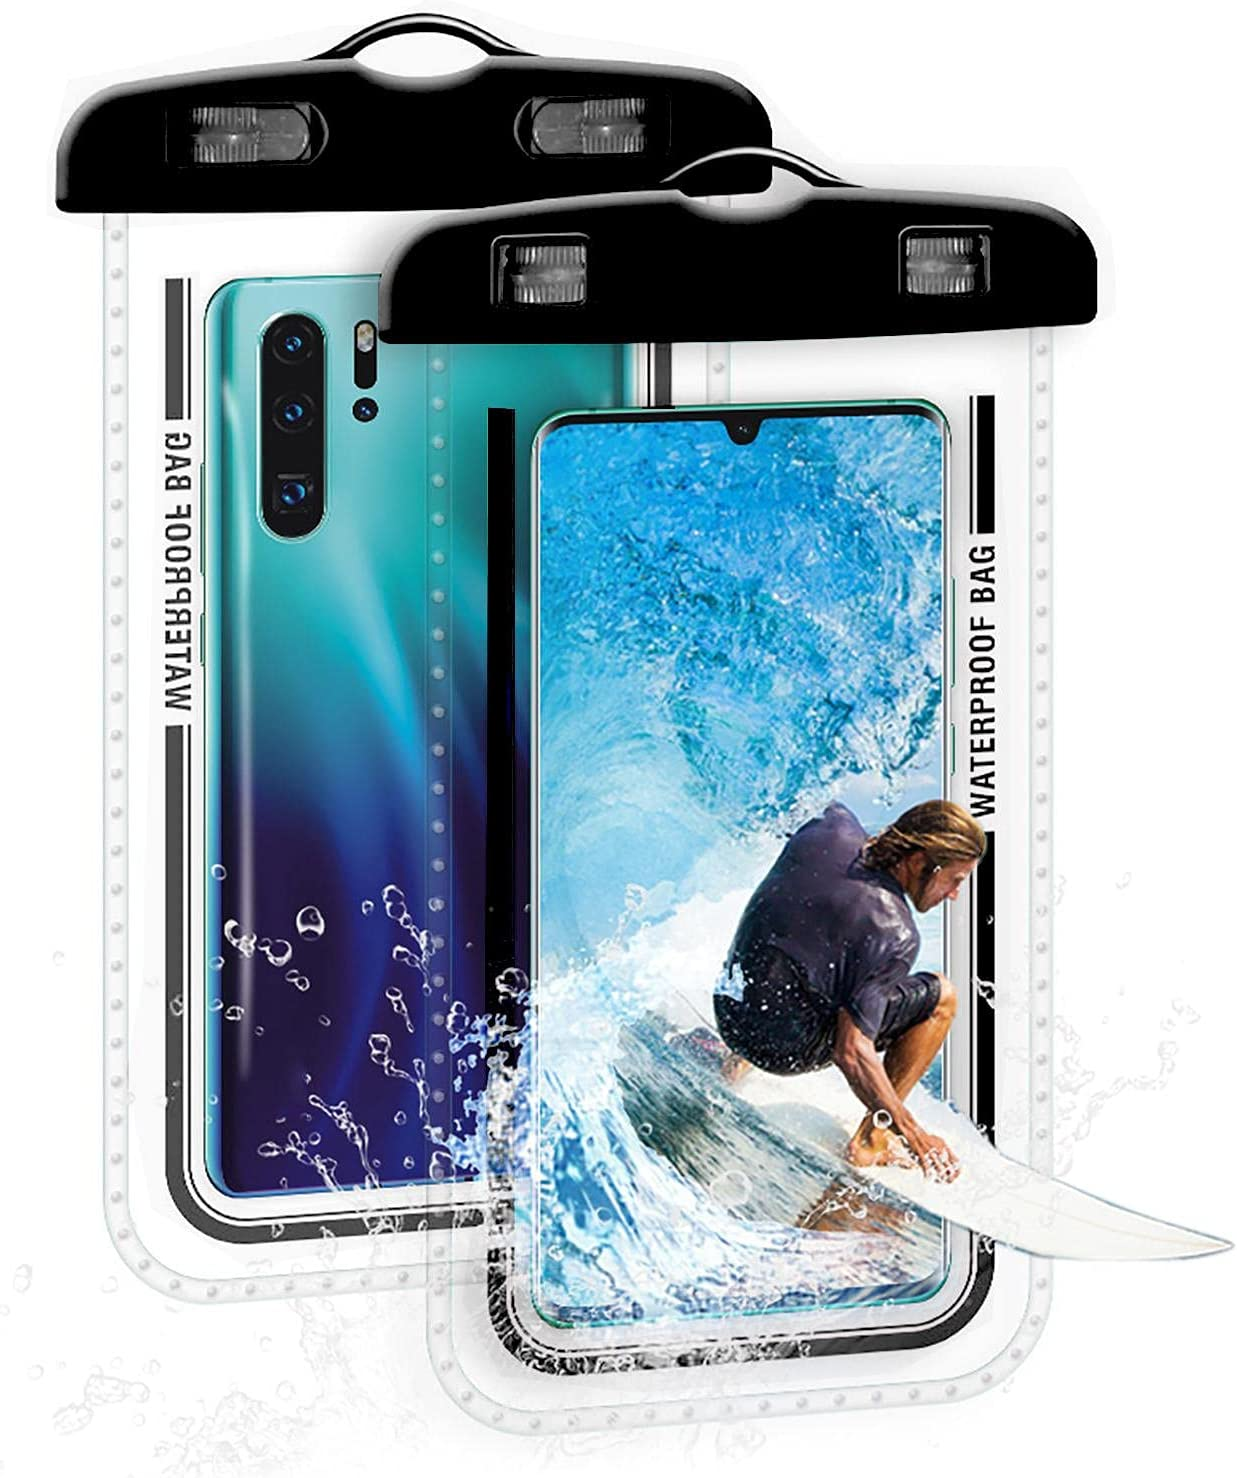 Mona43Henry Universal Waterproof Phone Bag, 7 Inches Waterproof Phone Pouch, Full-Screen Transparent Touch Sensitive Cellphone Dry Bag, Super Tightness Underwater Case Favorable